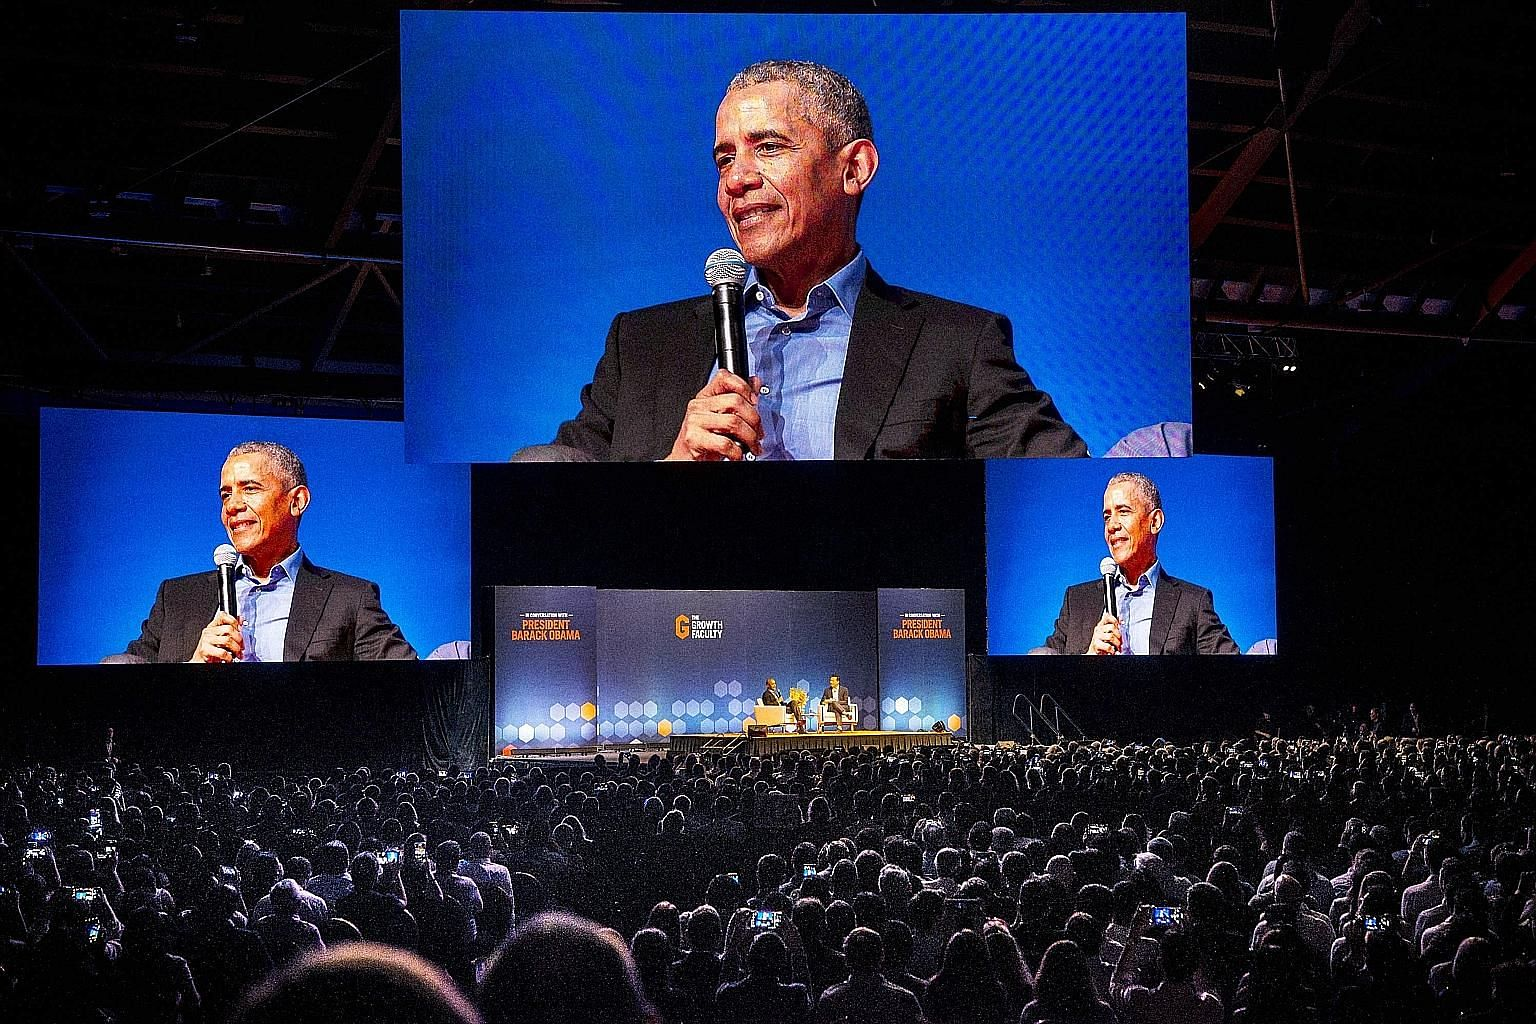 Former US president Barack Obama called on both leaders and their followers to embrace, not shun, the complexity of an evermore interconnected world during a talk in a packed hall at the Singapore Expo yesterday, the last day of his four-day trip to